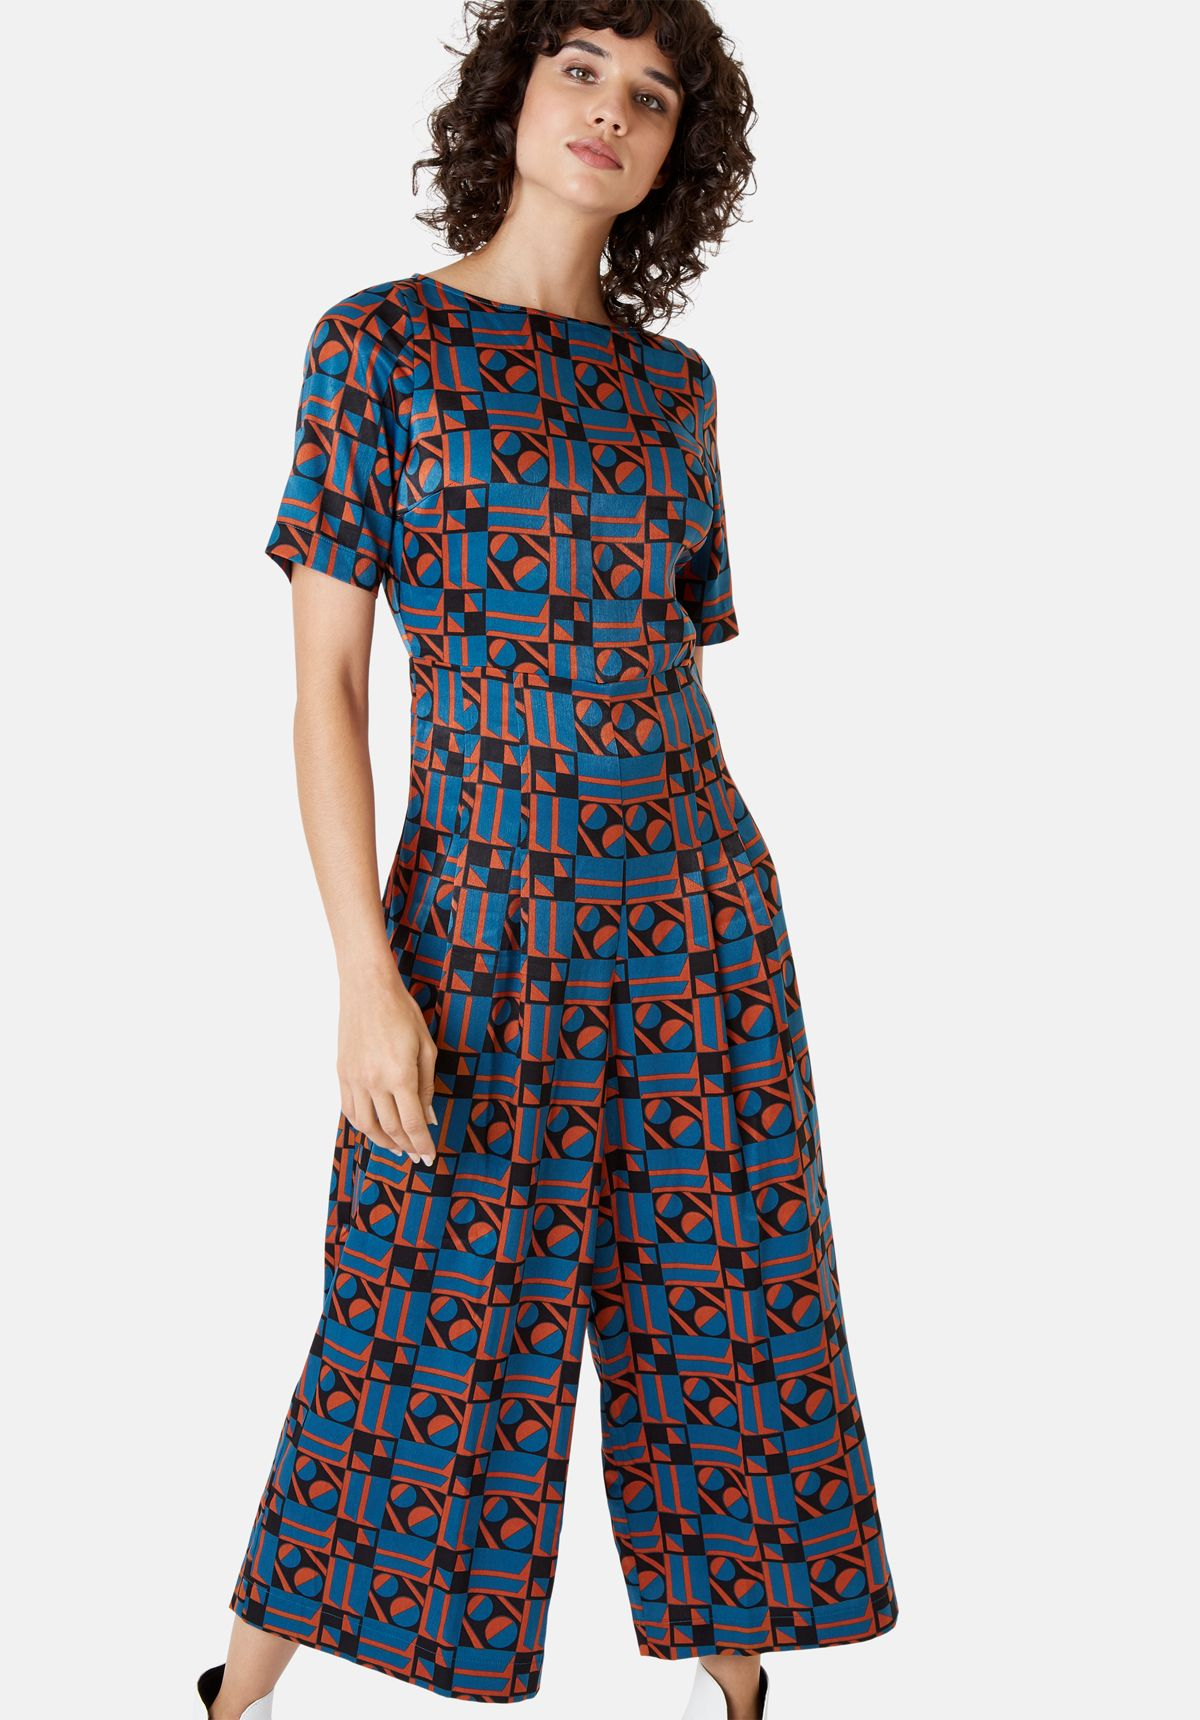 Bianca Short Sleeve Geometric Jumpsuit in Blue and Rust Red